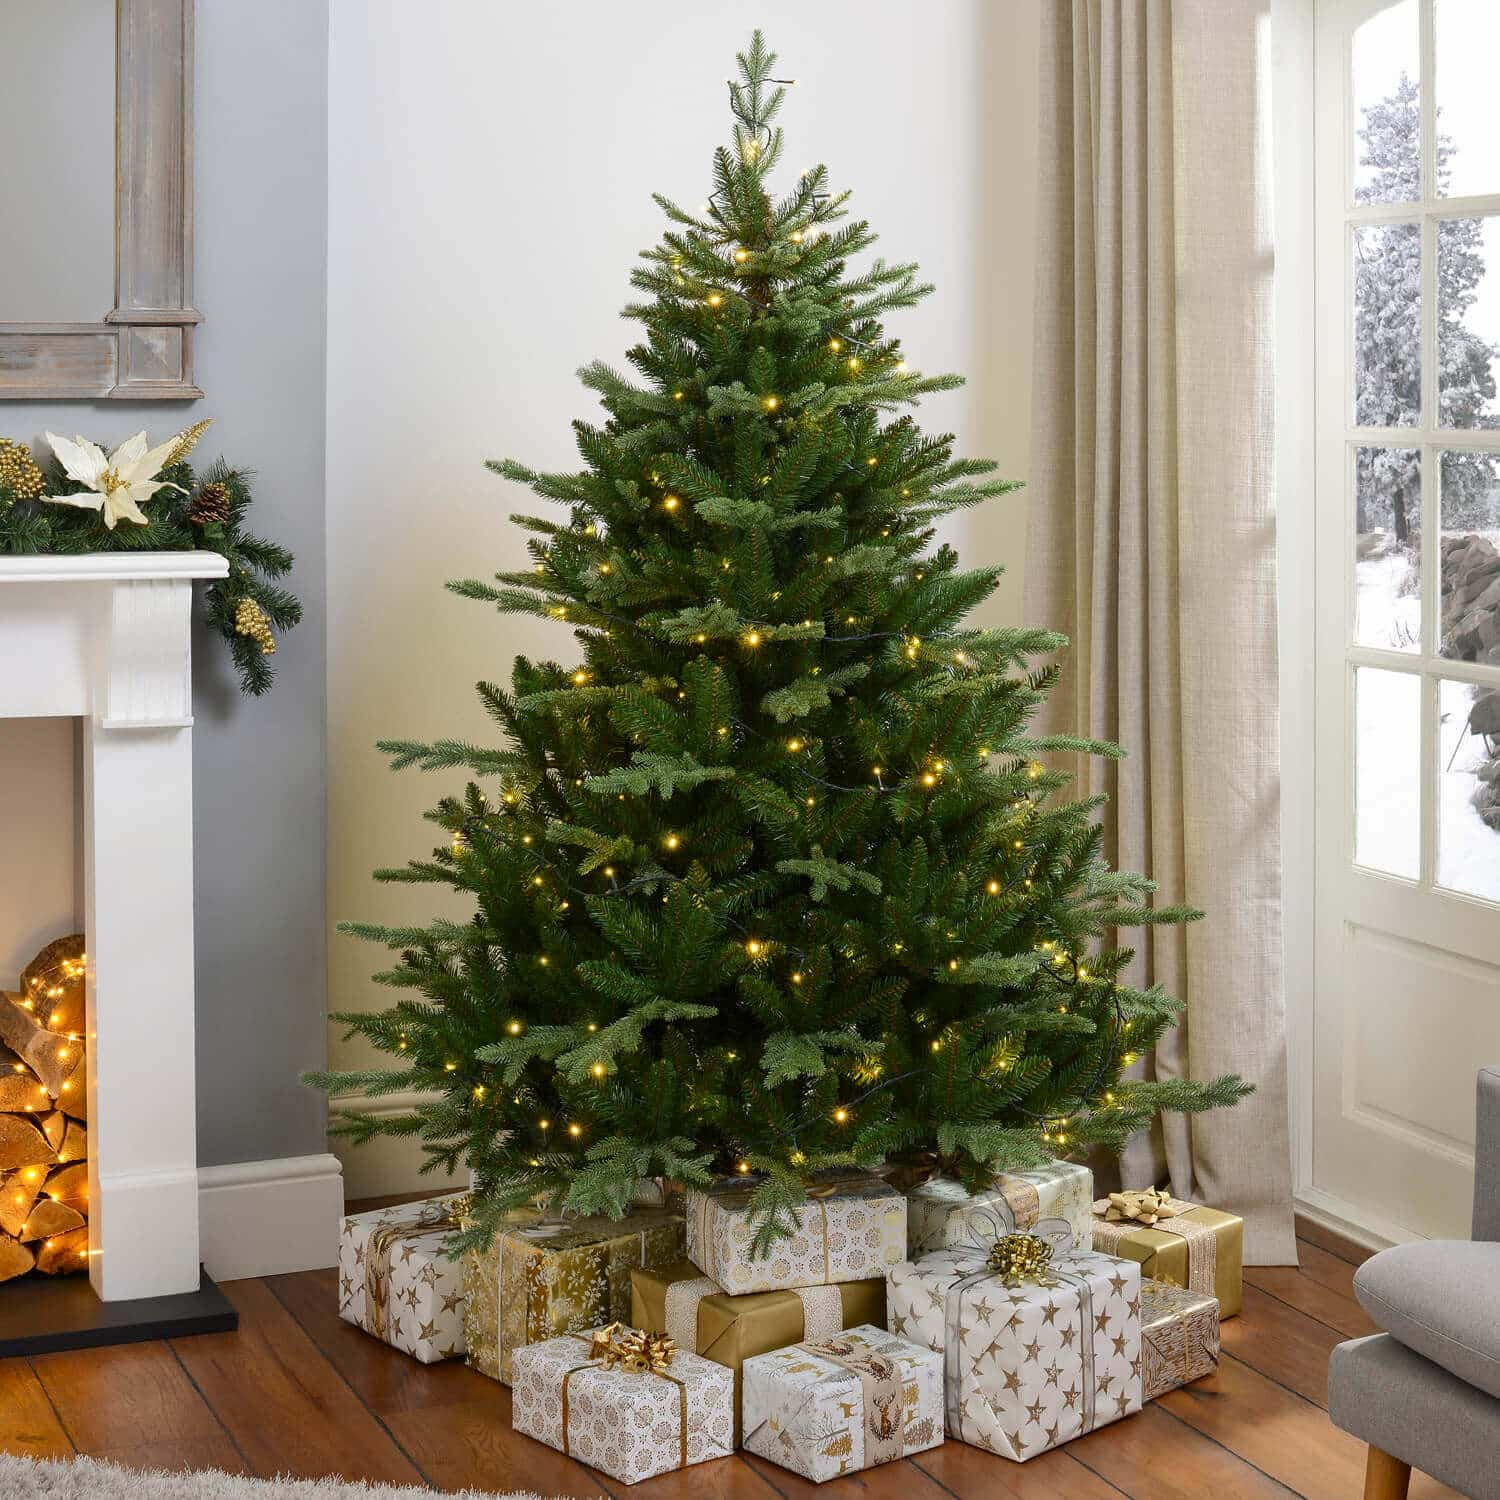 Artificial Christmas Trees Amazon Uk: Beautiful And Amazing Artificial Christmas Trees